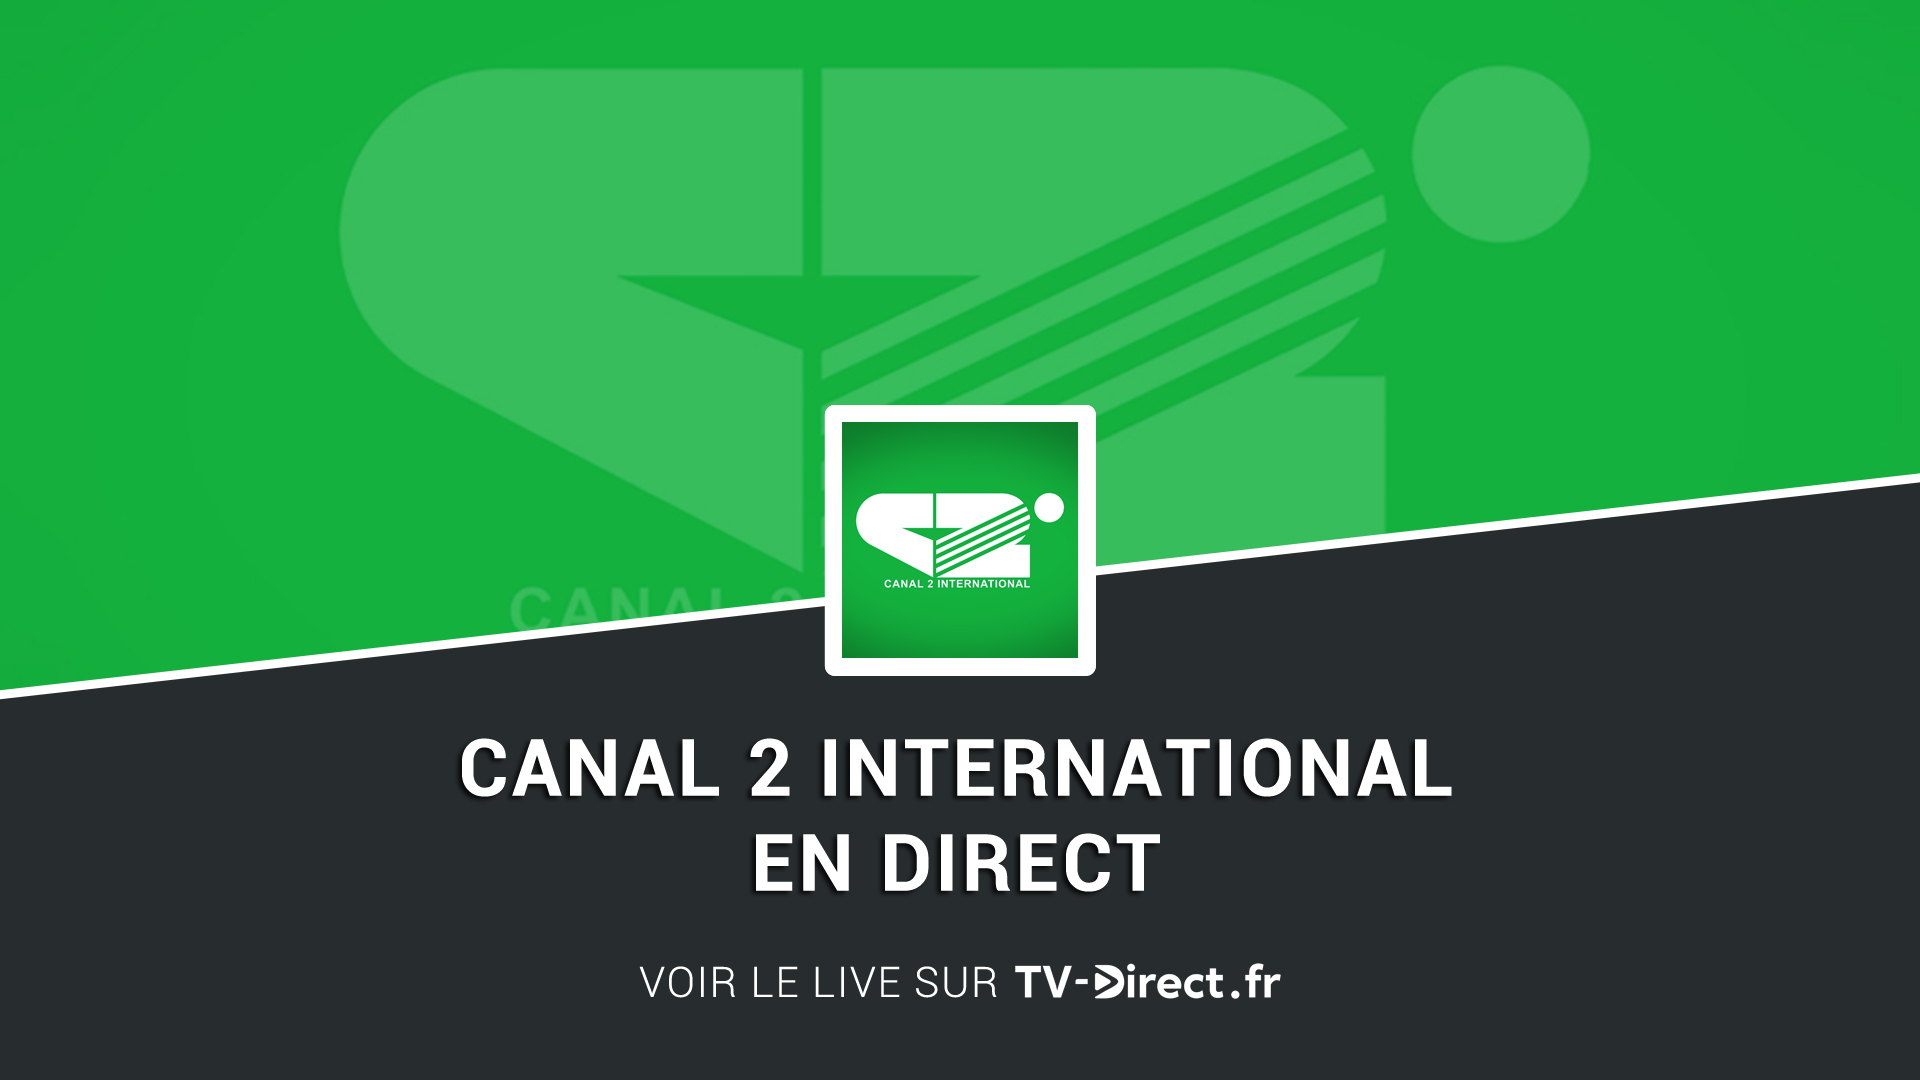 canal 2 international direct regarder le live sur internet. Black Bedroom Furniture Sets. Home Design Ideas